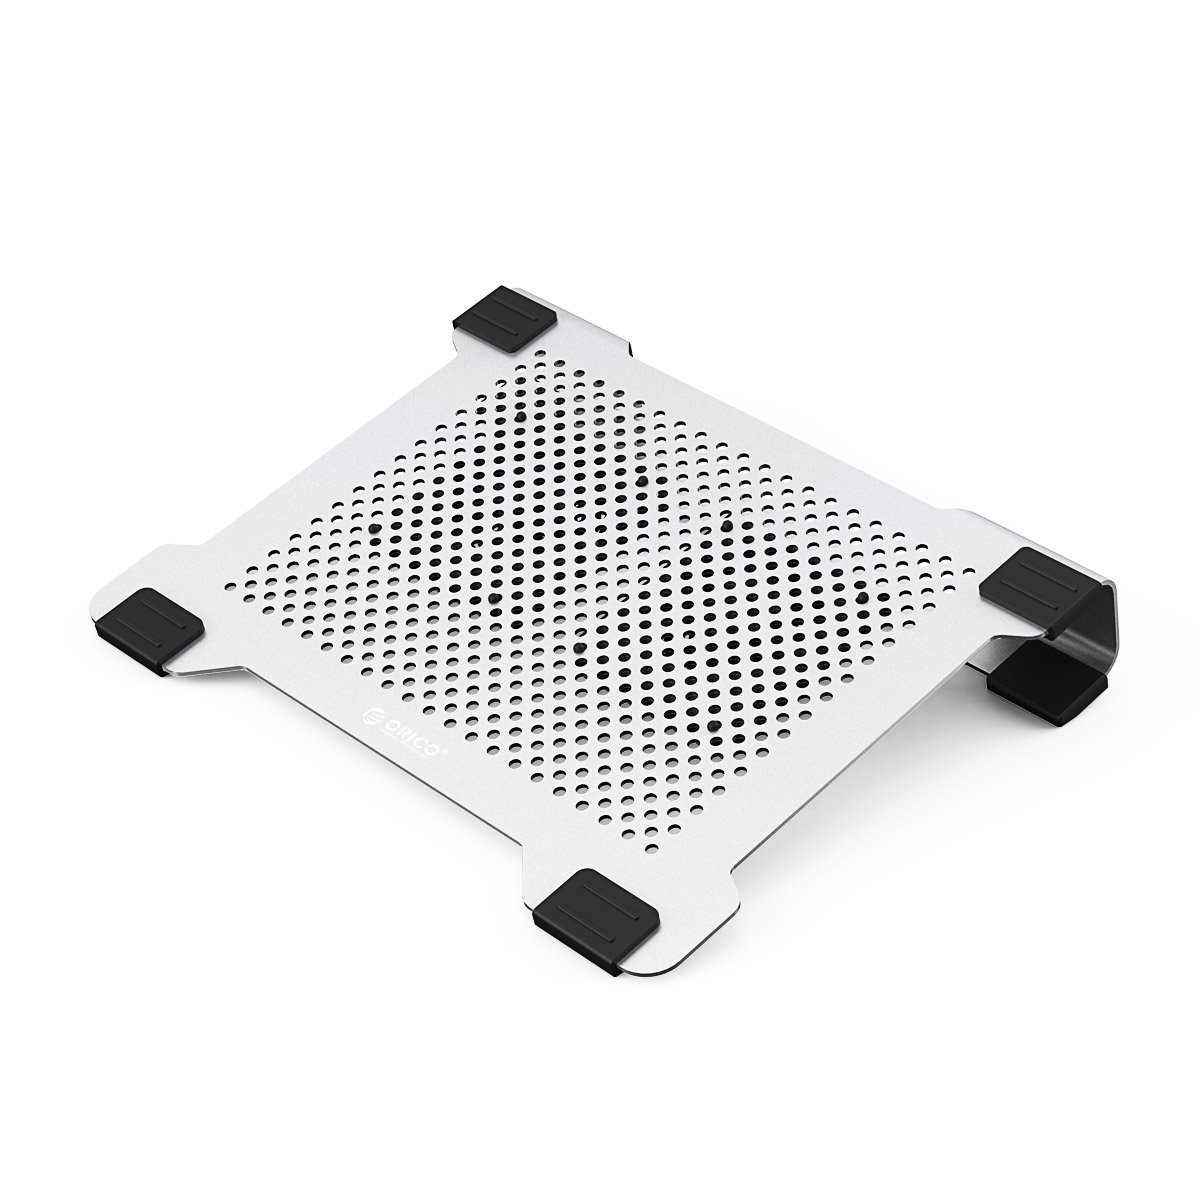 ORICO 15 inch Laptop Cooling Pad with Arrangeable Fans at 2000 ±10% rpm, cooling pad